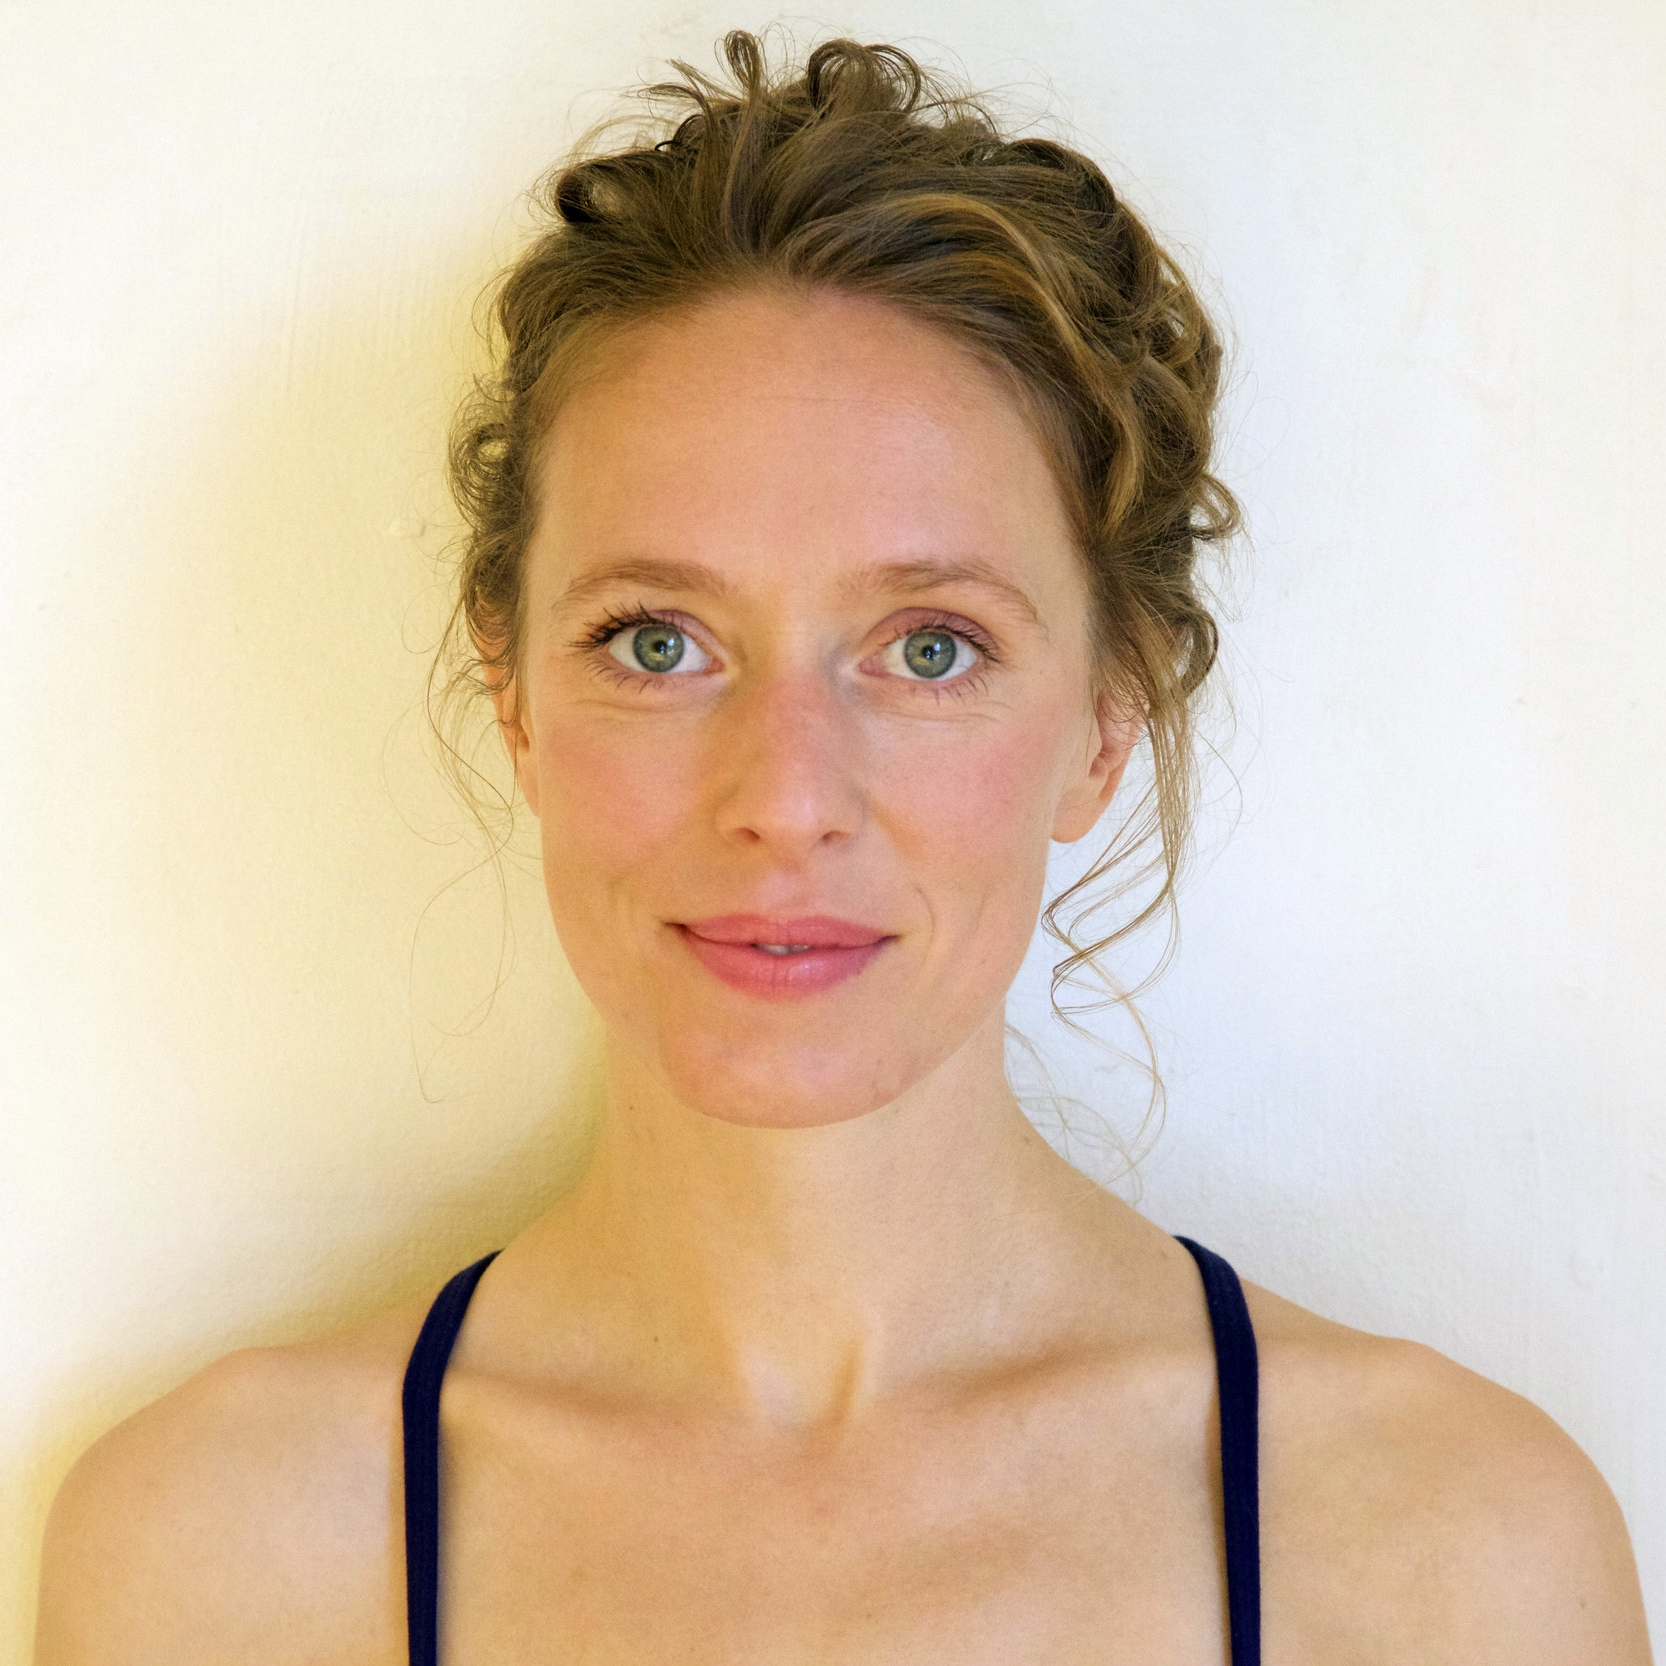 """Janet McInnes  Founder of Leith Yoga and Lead Teacher  Janet McInnes is a Level 3 Certified Forrest Yoga Teacher who has completed the Forrest Yoga Foundation and Advanced Teacher Trainings with Ana Forrest. Janet has assisted Ana Forrest and Guardian teachers Jambo Truong and Sandra Robinson.  She is studying Yin Yoga with Josh Summers and in 2018 completed a training in the Poppy Perinatal approach to further support Pre and Postnatal students.  A warm and inclusive teacher, Janet is dedicated to her ongoing development as a yoga teacher and bodyworker and is passionate about sharing the healing benefits of Yoga with her community.  """"Forrest Yoga is not the answer, to me, Forrest Yoga is the ritual of connecting to self in a profound way, from where a flood of questions arise about how we want to feel, how we want our lives to be and how we want to be in our relationships. This practice brings clarity into our lives and the strength to make the evolutions we desire. And, breathing deeply, sweating and playing upside down sure is an exhilarating way to spend time together in a group."""""""